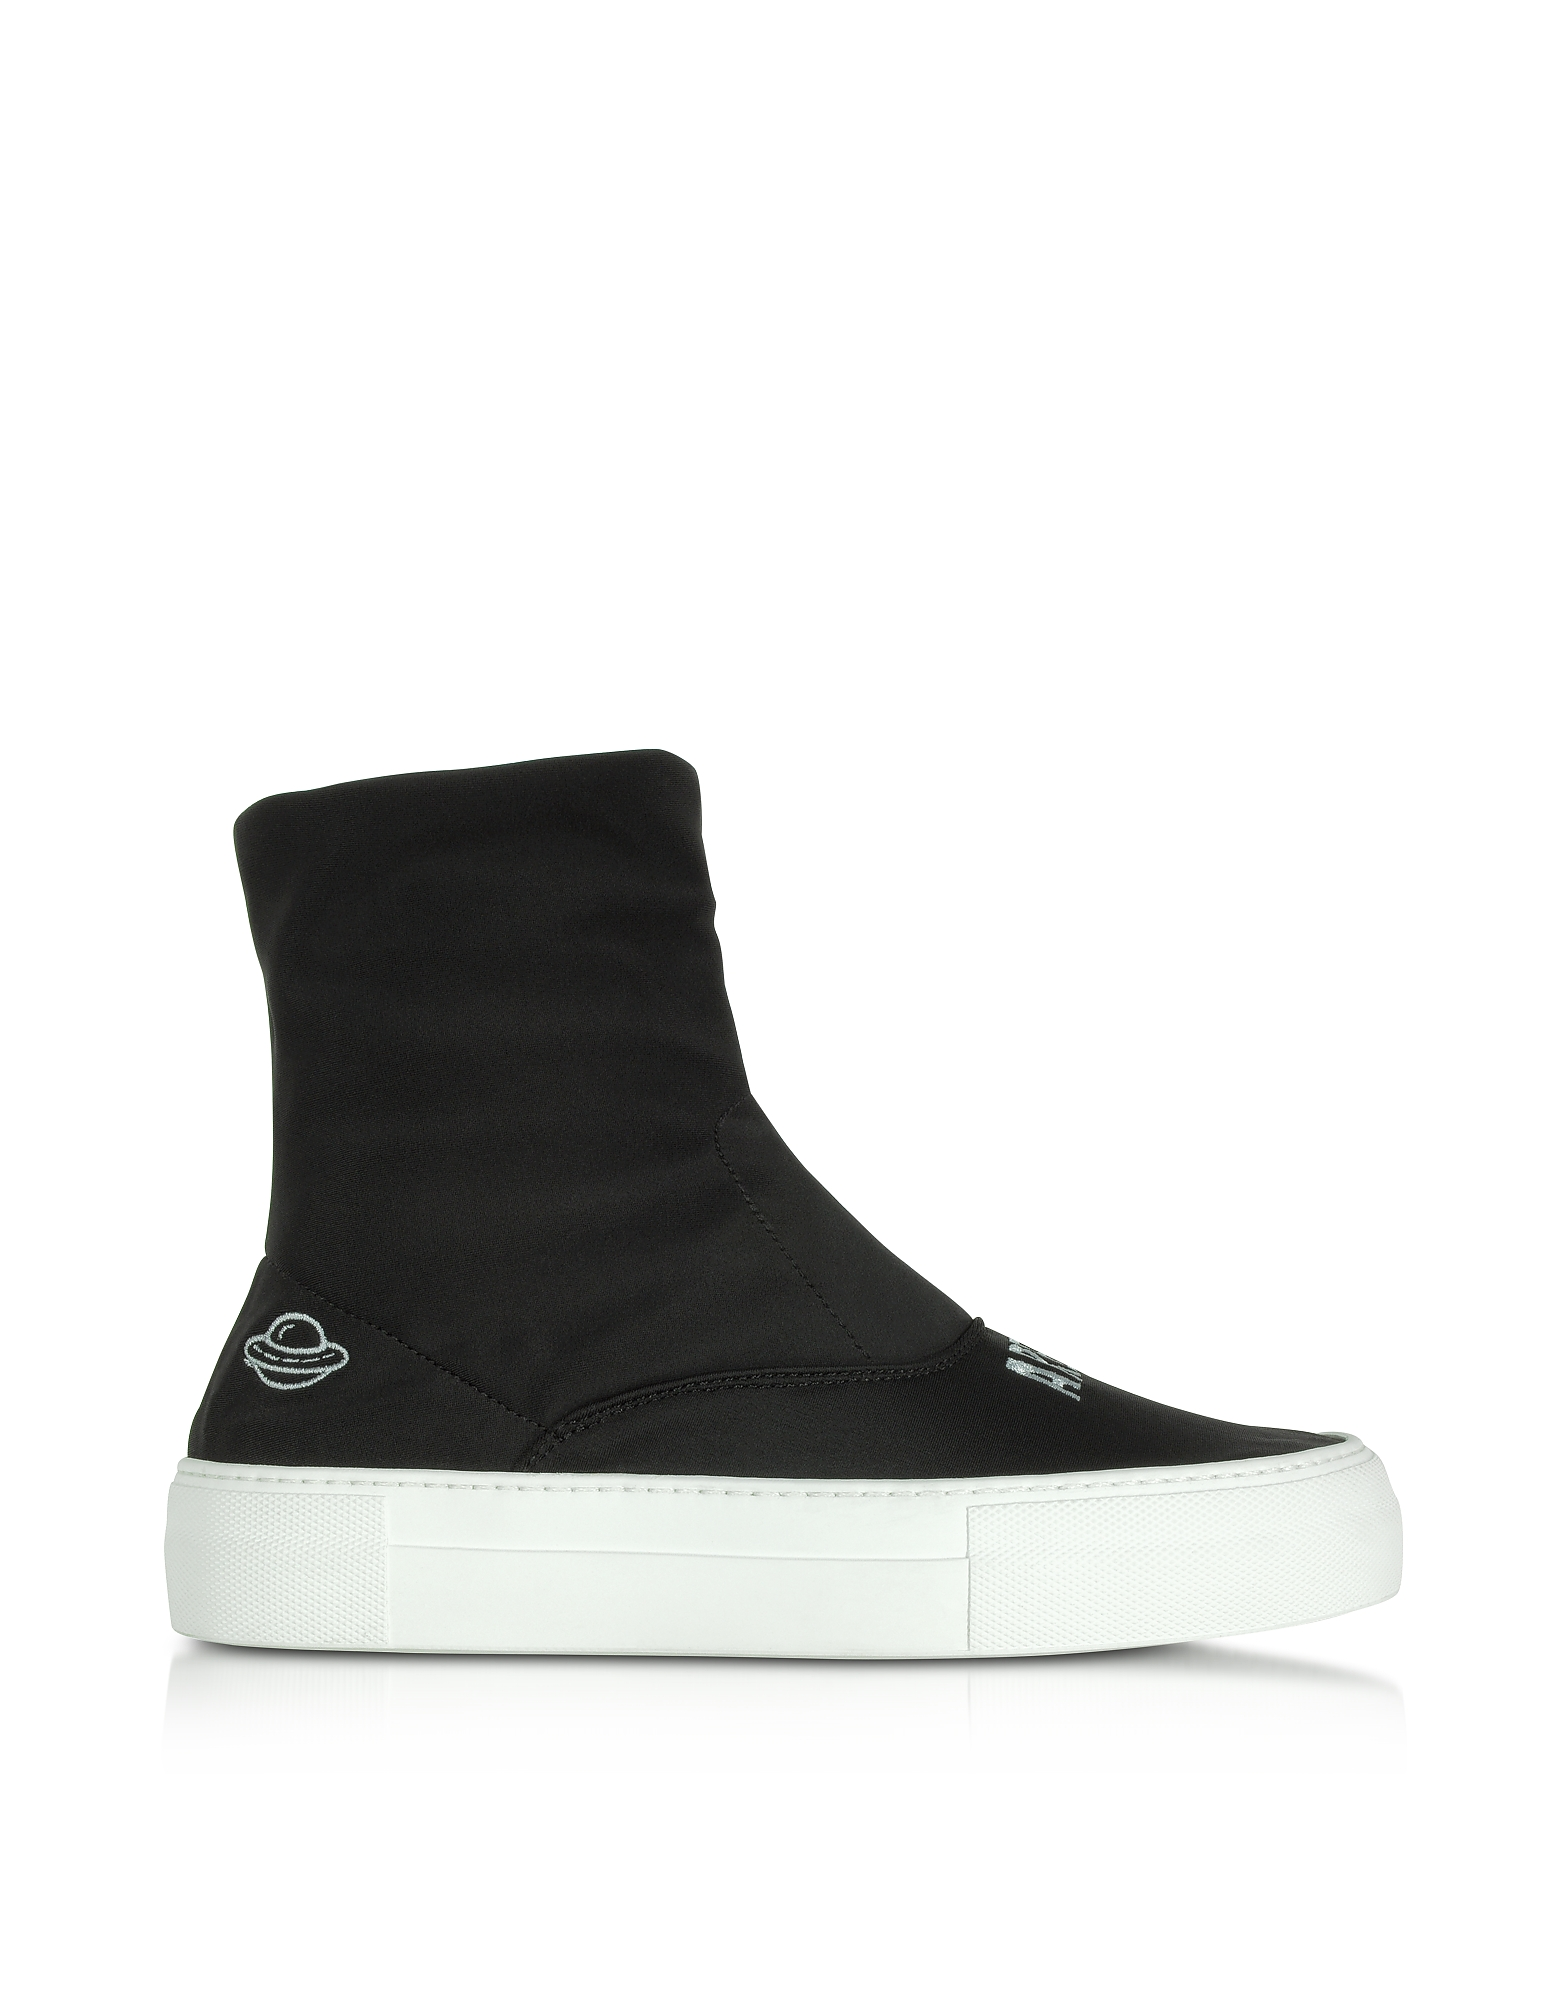 Joshua Sanders Shoes, Are We Alone Black Neoprene High Top Sneakers